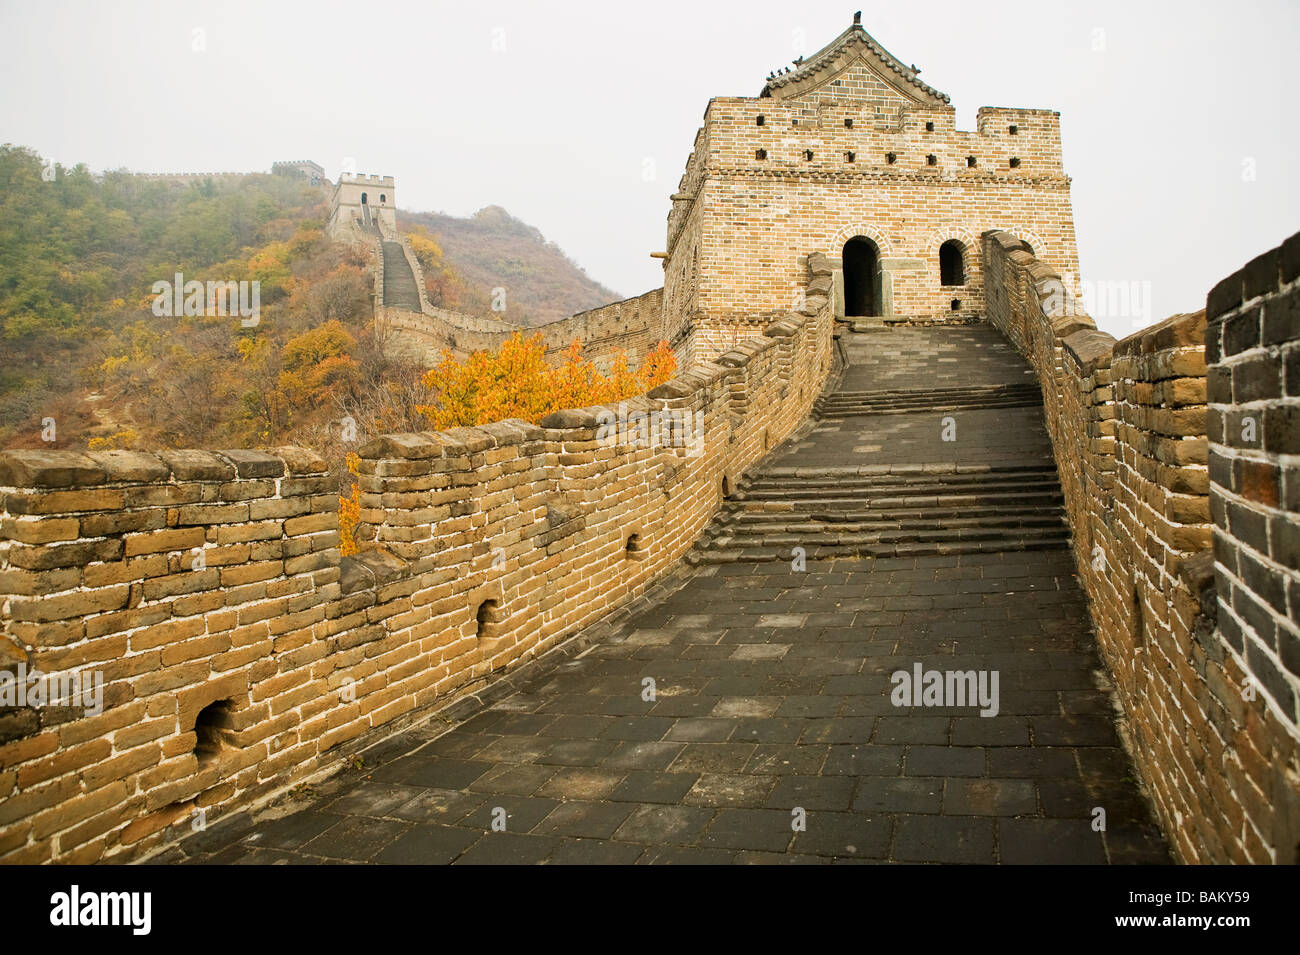 Mutianyu section of the great wall of china - Stock Image